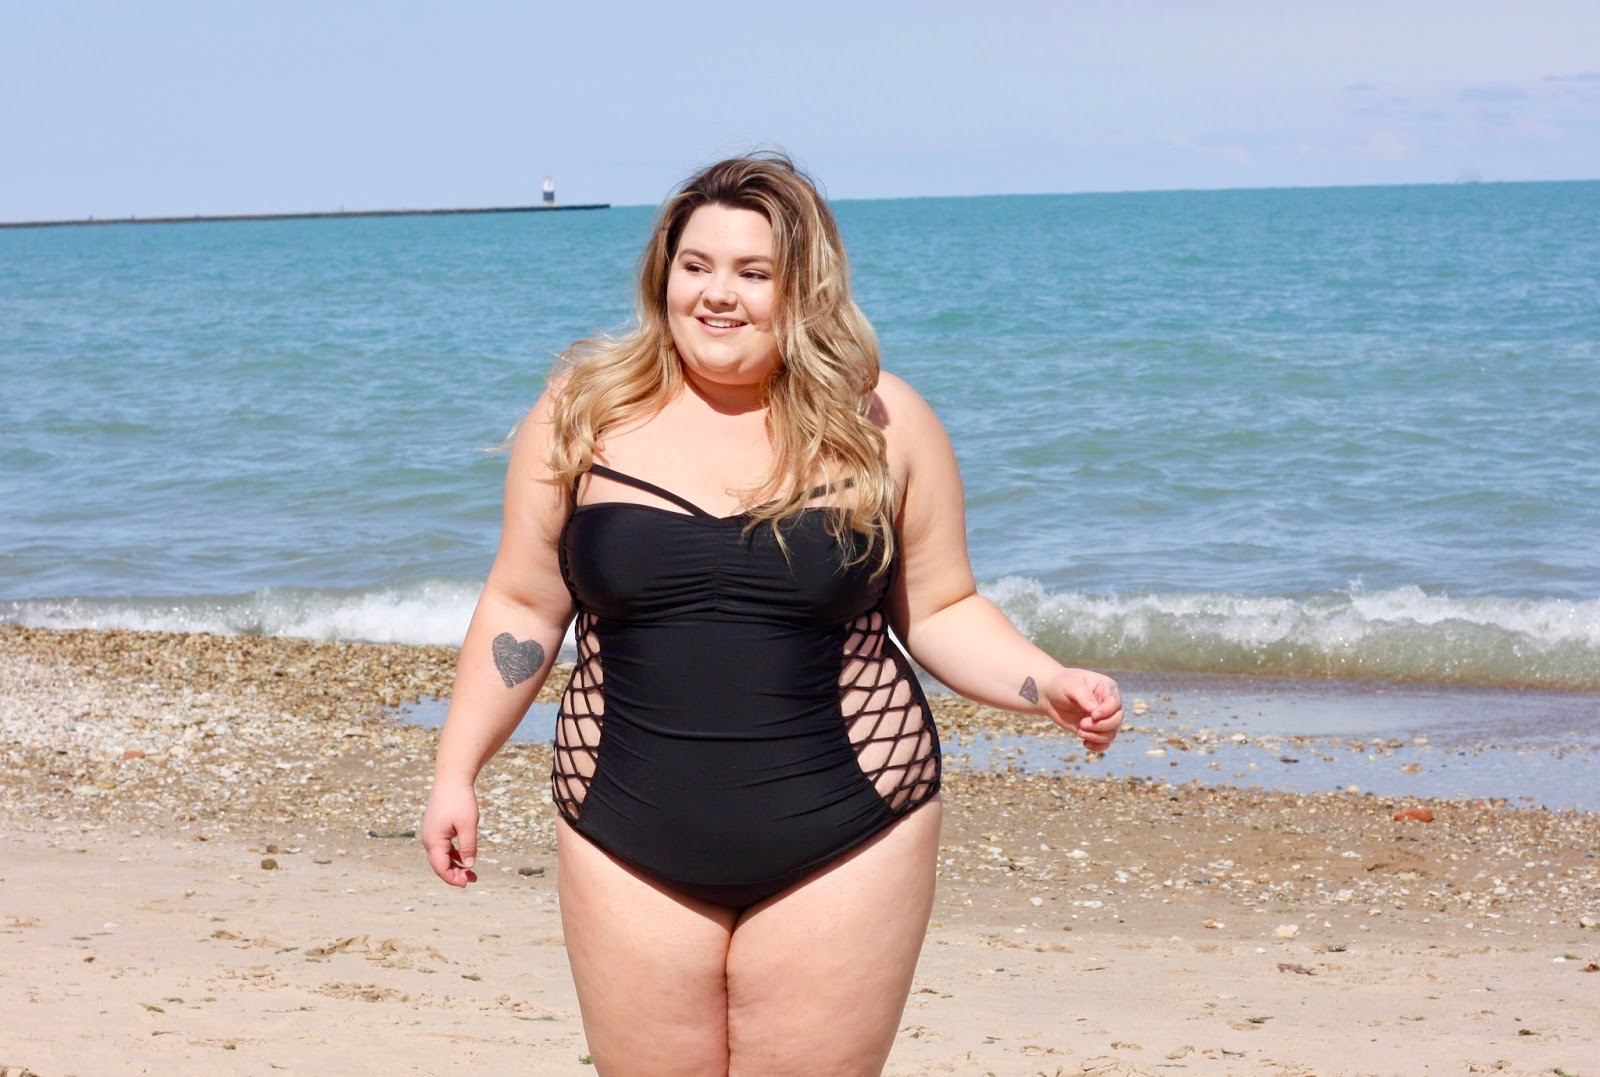 swimsuits for all, gabifresh, Ashley graham, swimsuits for plus size, sexy plus size swim suits, plus size one piece, swimwear, natalie craig, natalie in the city, Chicago, oak street beach, midwest blogger, body positivity, fatshion, fatkini